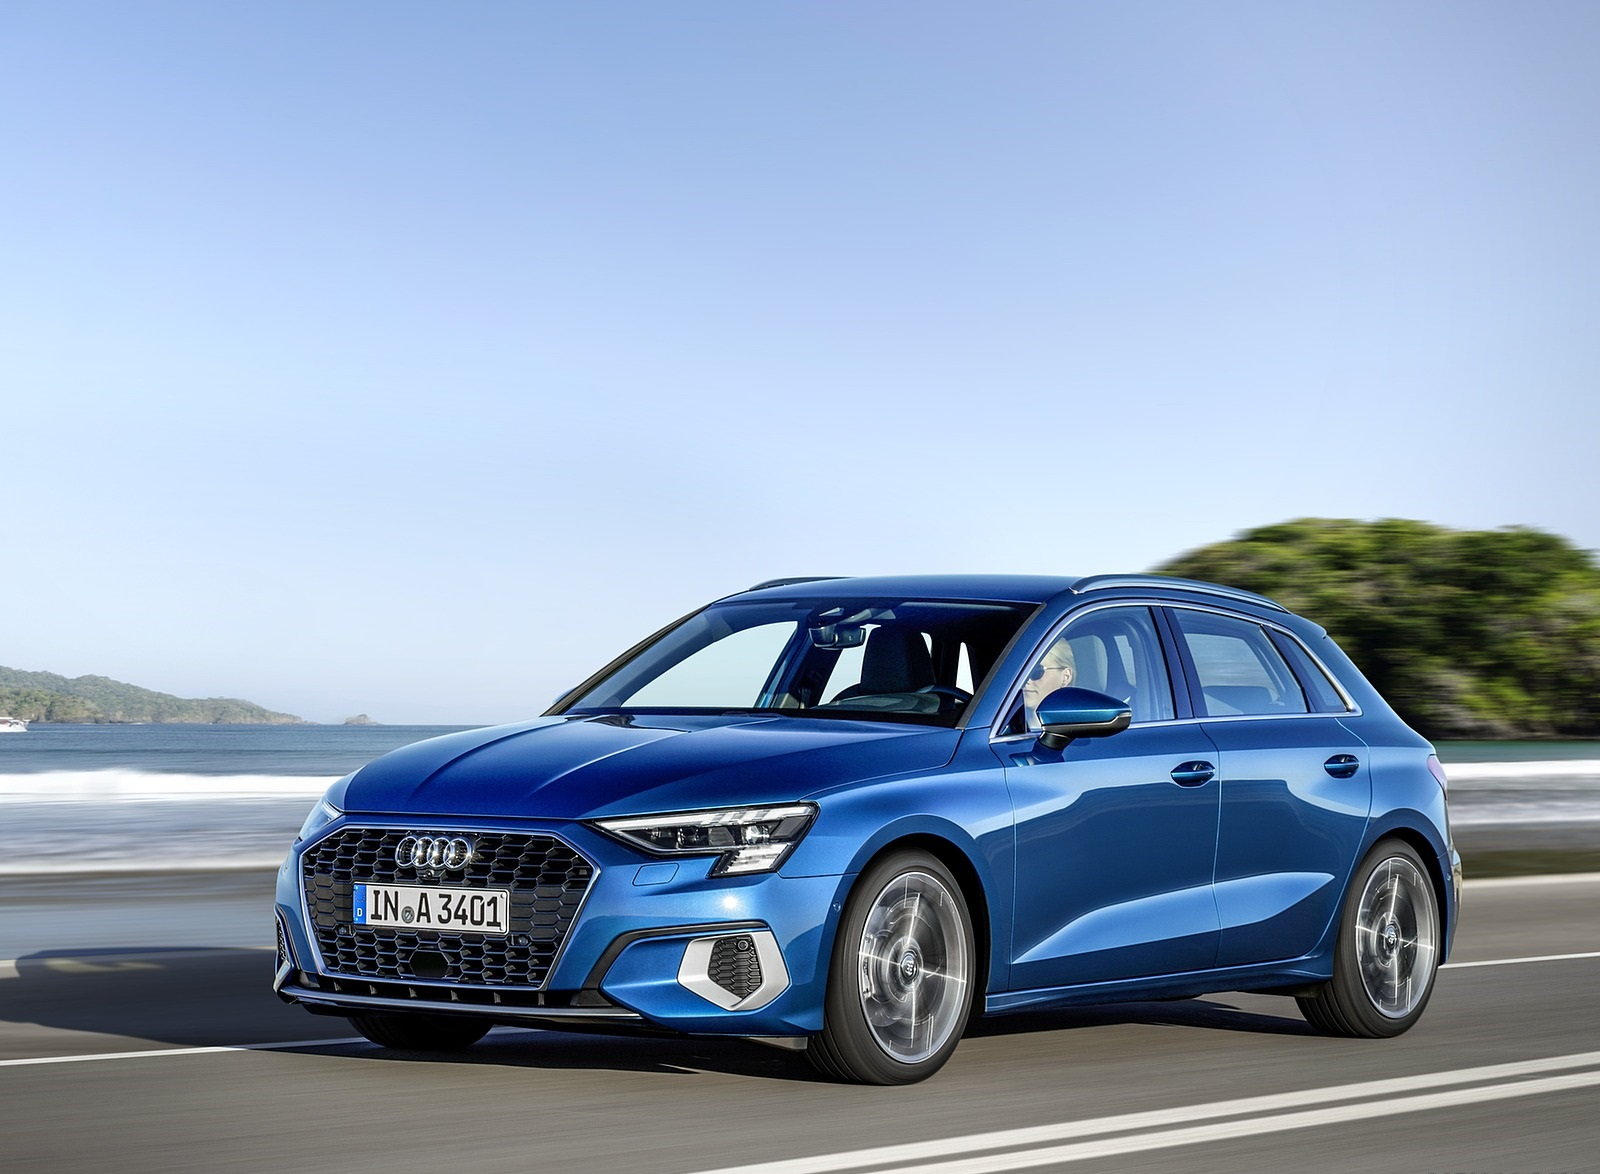 2021 Audi A3 Sportback (Color: Atoll Blue) Front Three-Quarter Wallpapers (1)